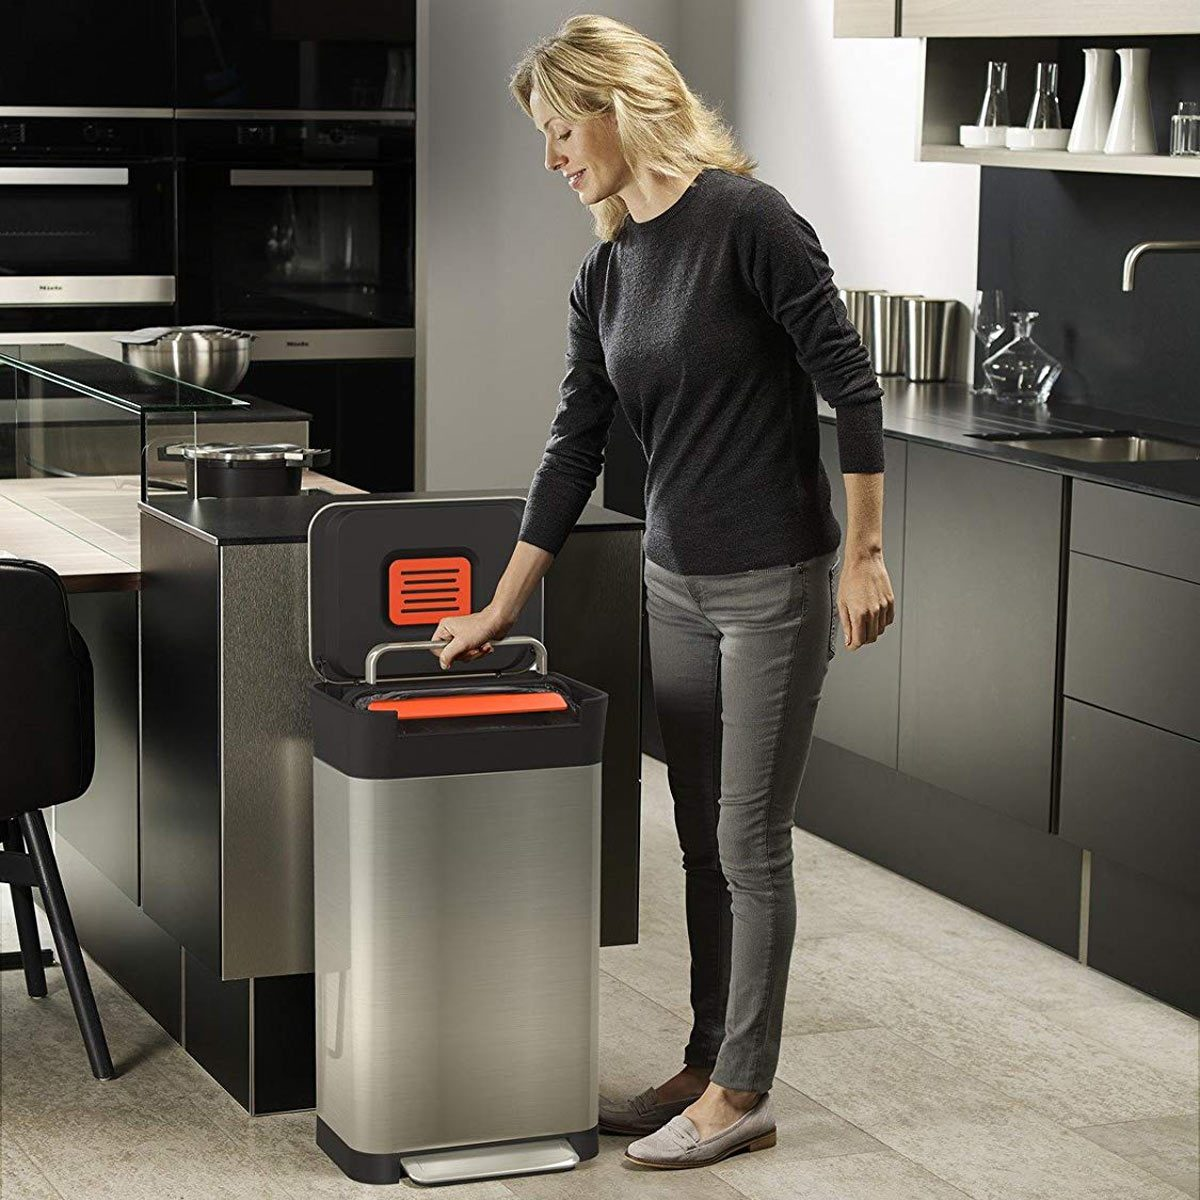 woman-activates-kitchen-trash-compactor